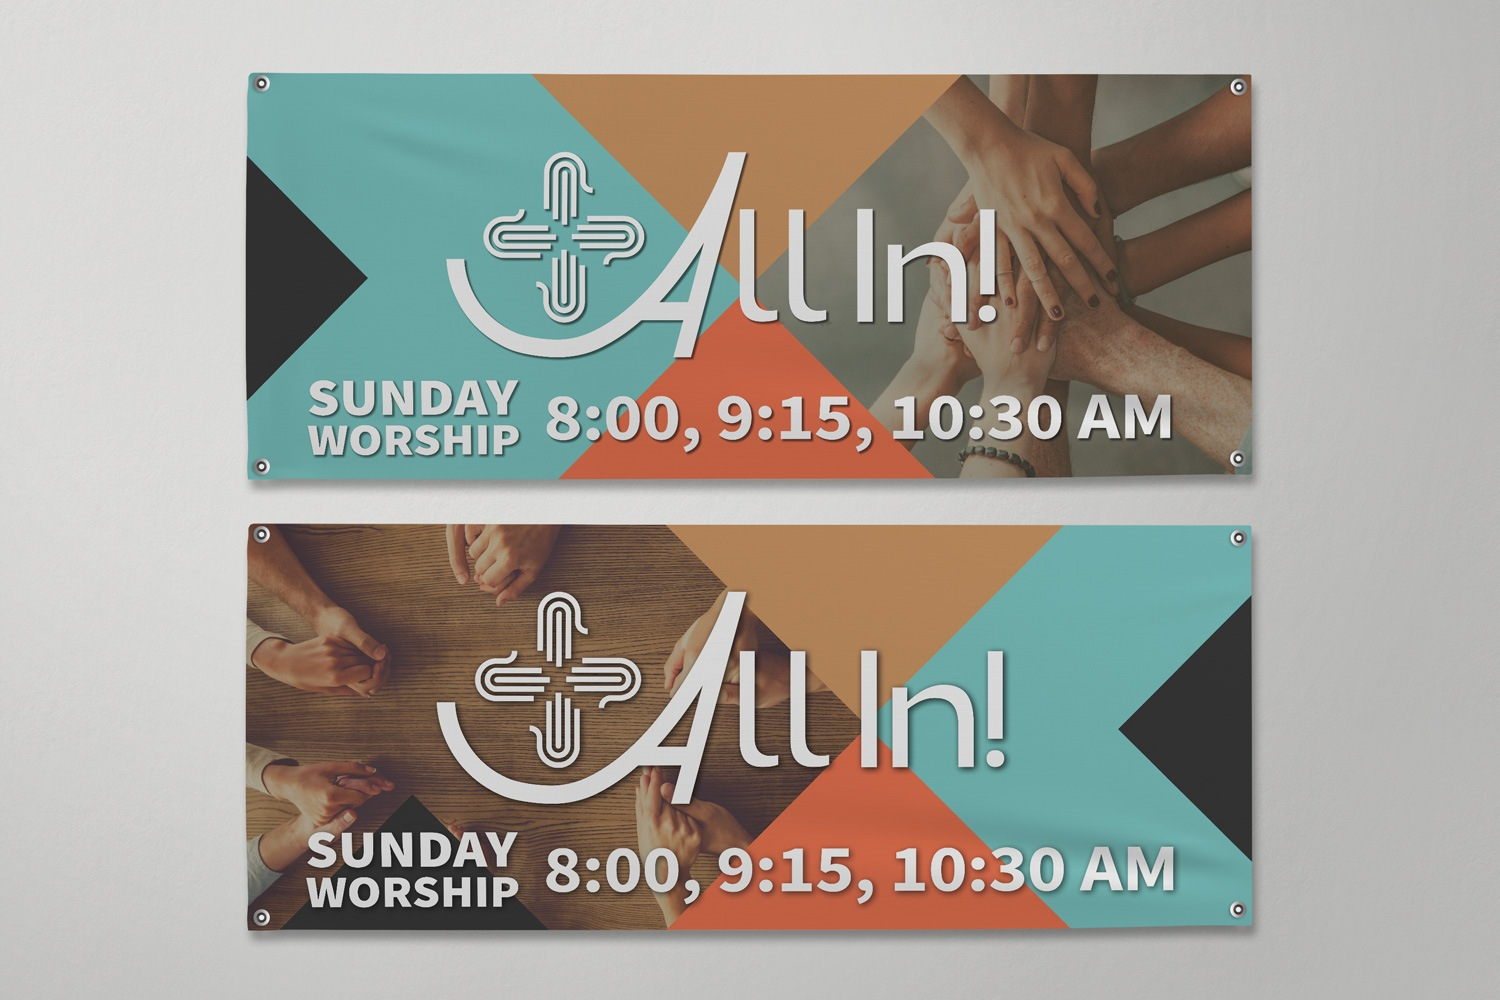 banners for church capital stewardship campaign materials design and printing